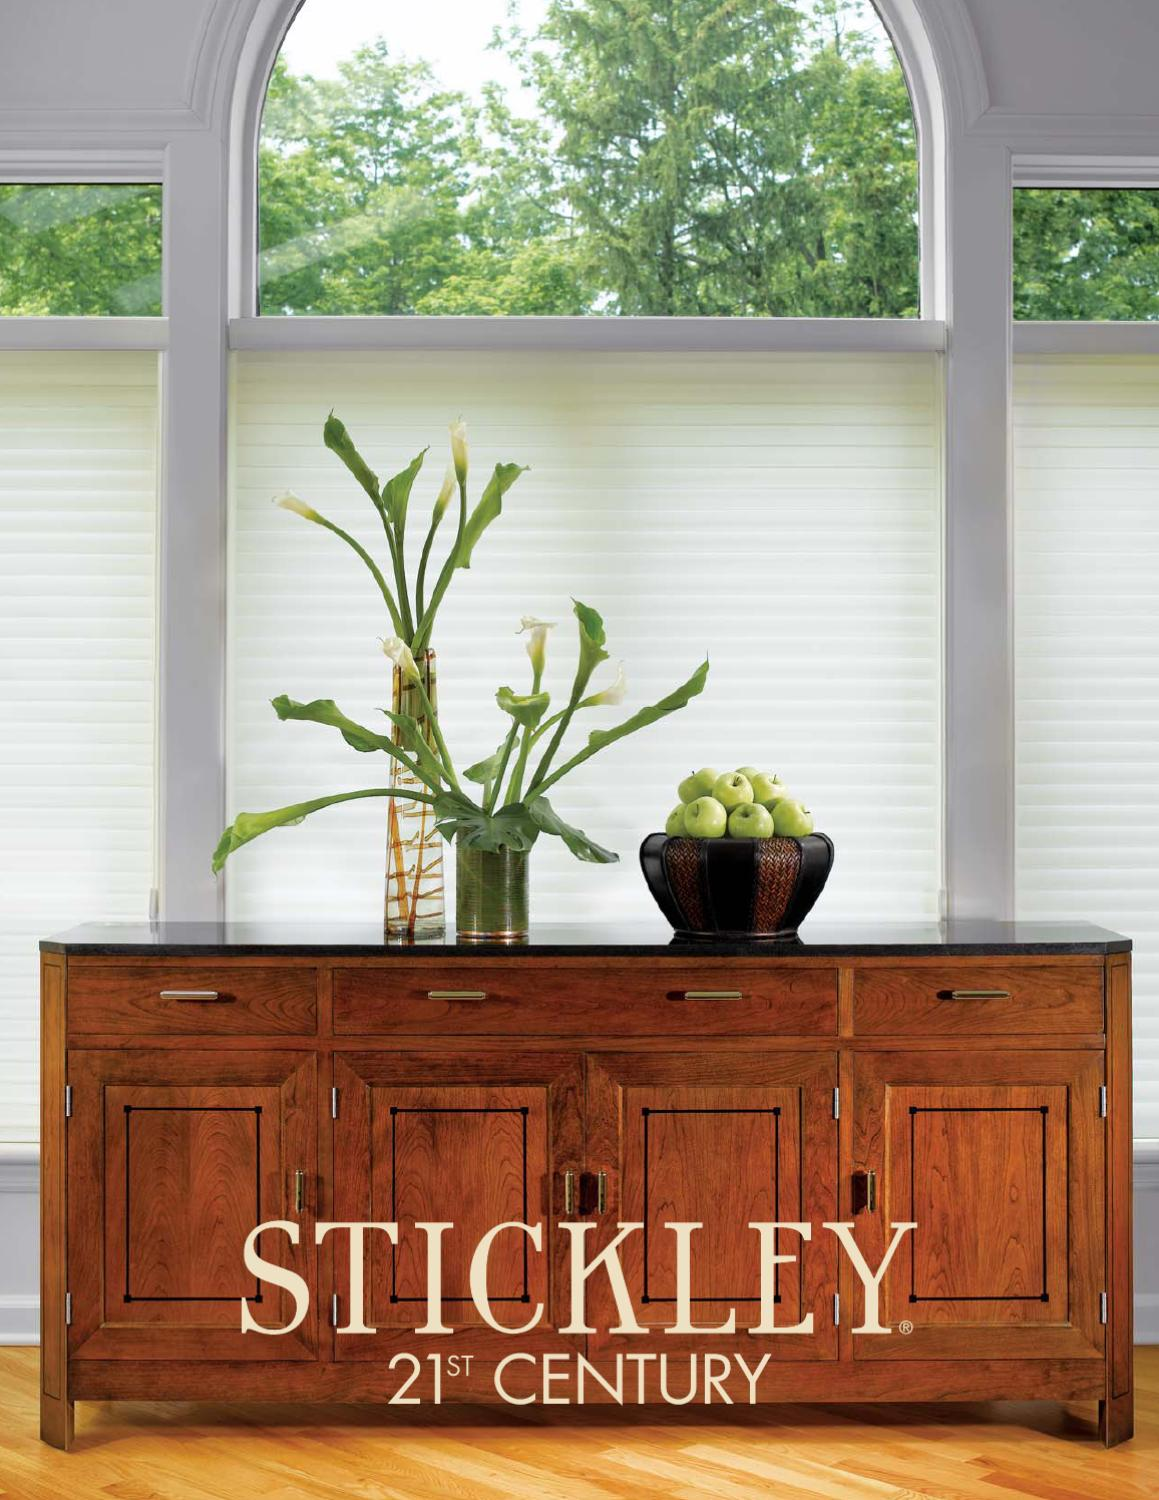 stickley century collection issuu page avenue six piece chair and accent table set turquoise mats door chest furniture bath beyond area rugs burgundy lamp shades pier one tures